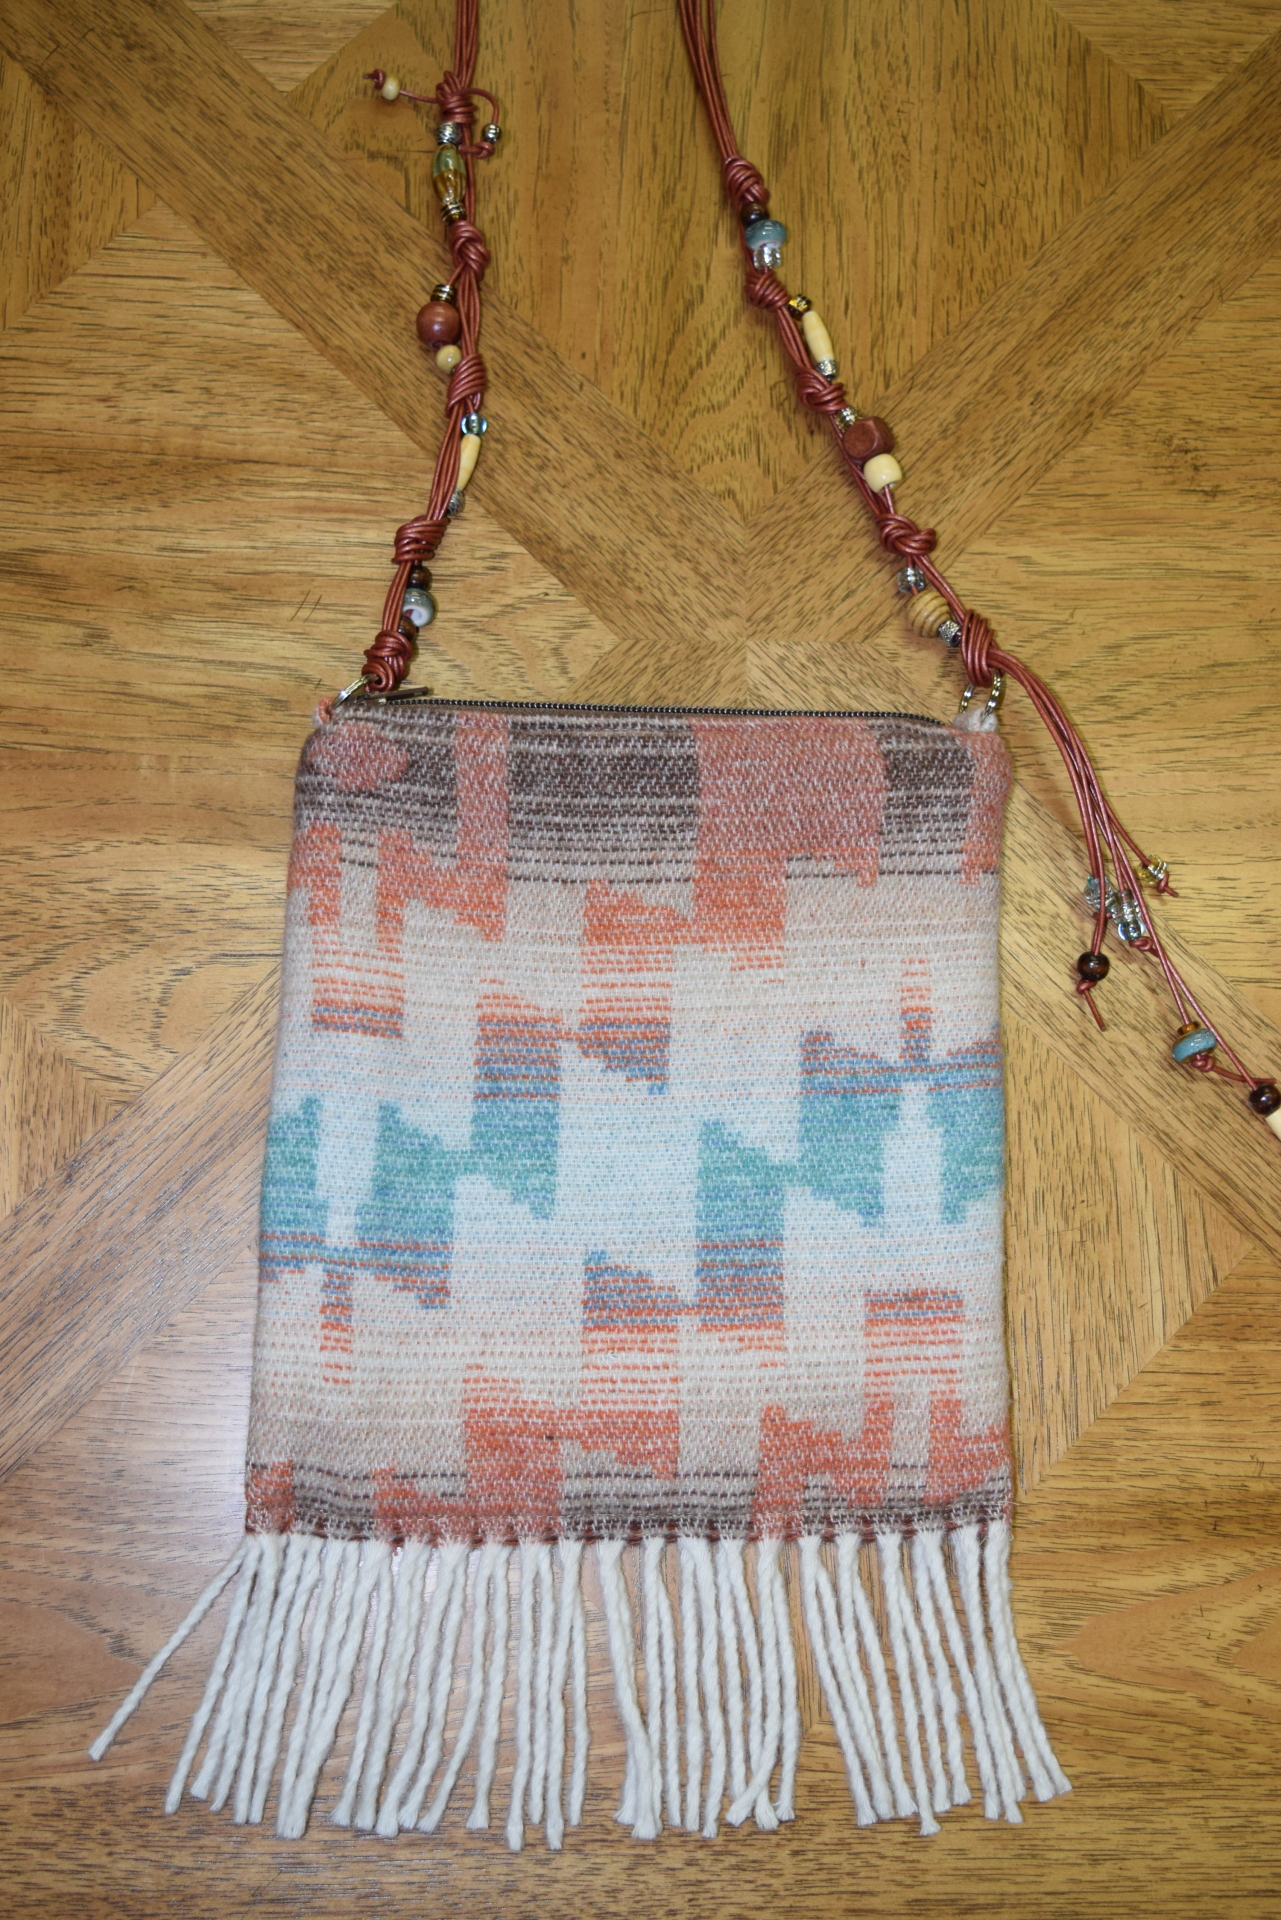 #B05HSF - HARVEST SKY FRINGE RUST BEADED BAG - $129.95